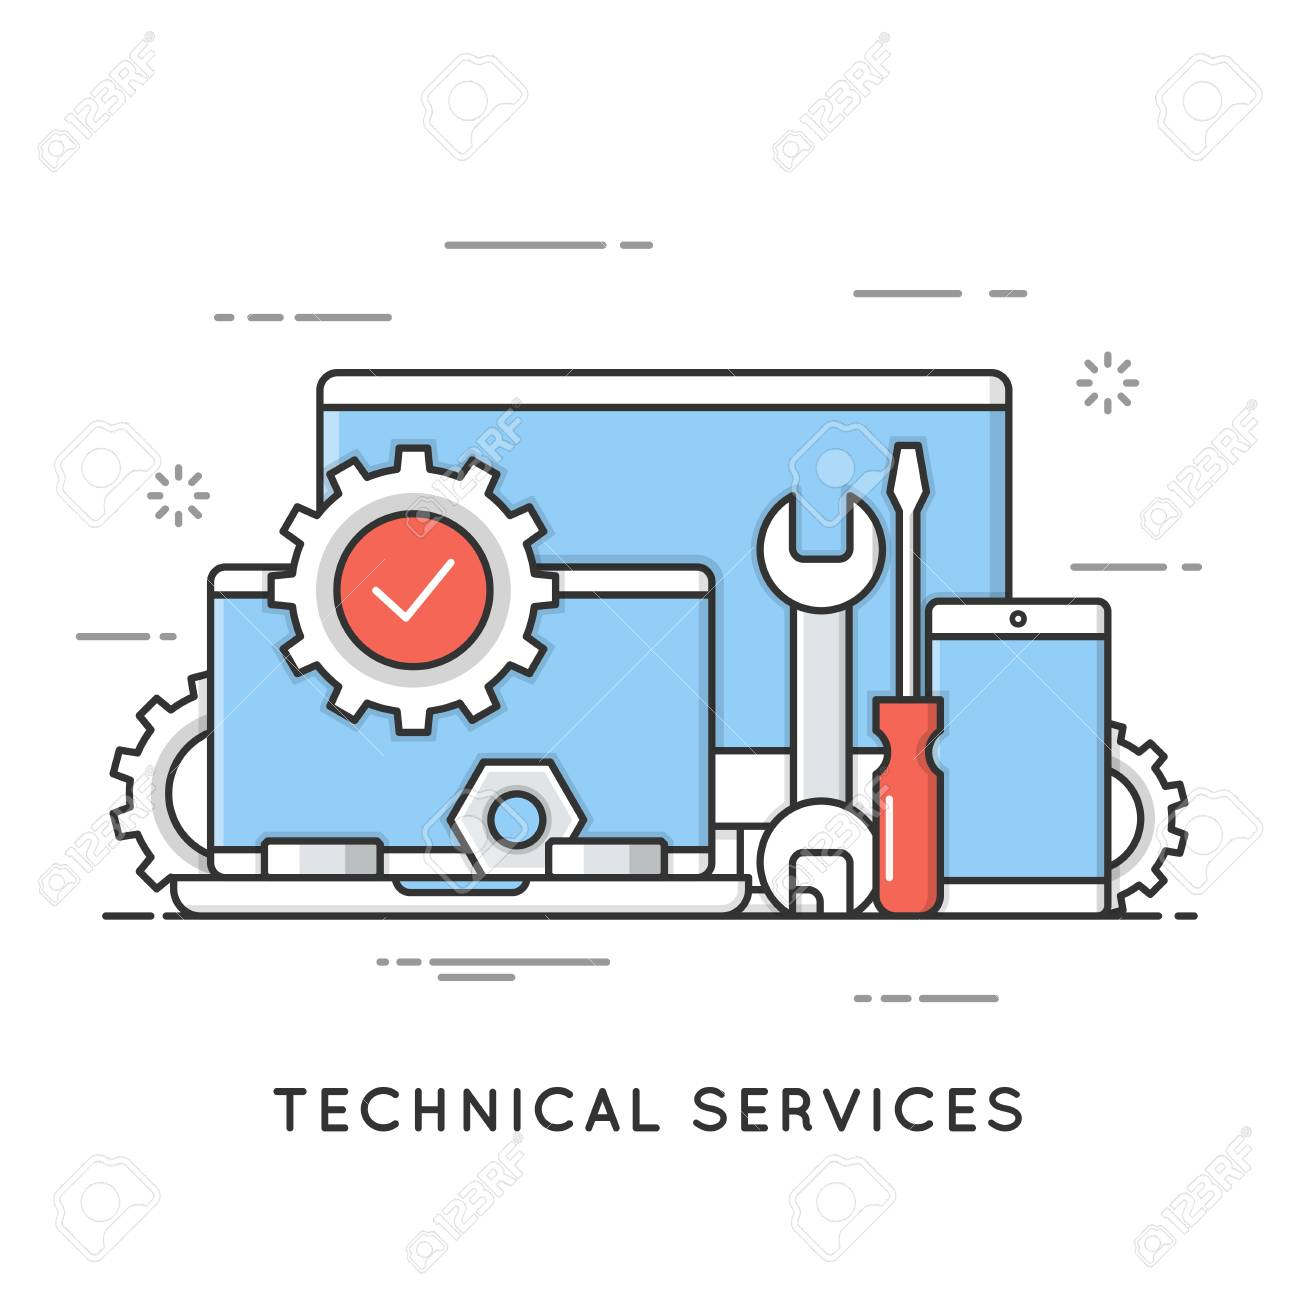 Technical services, computer repair, support. Flat line art styl - 84908714